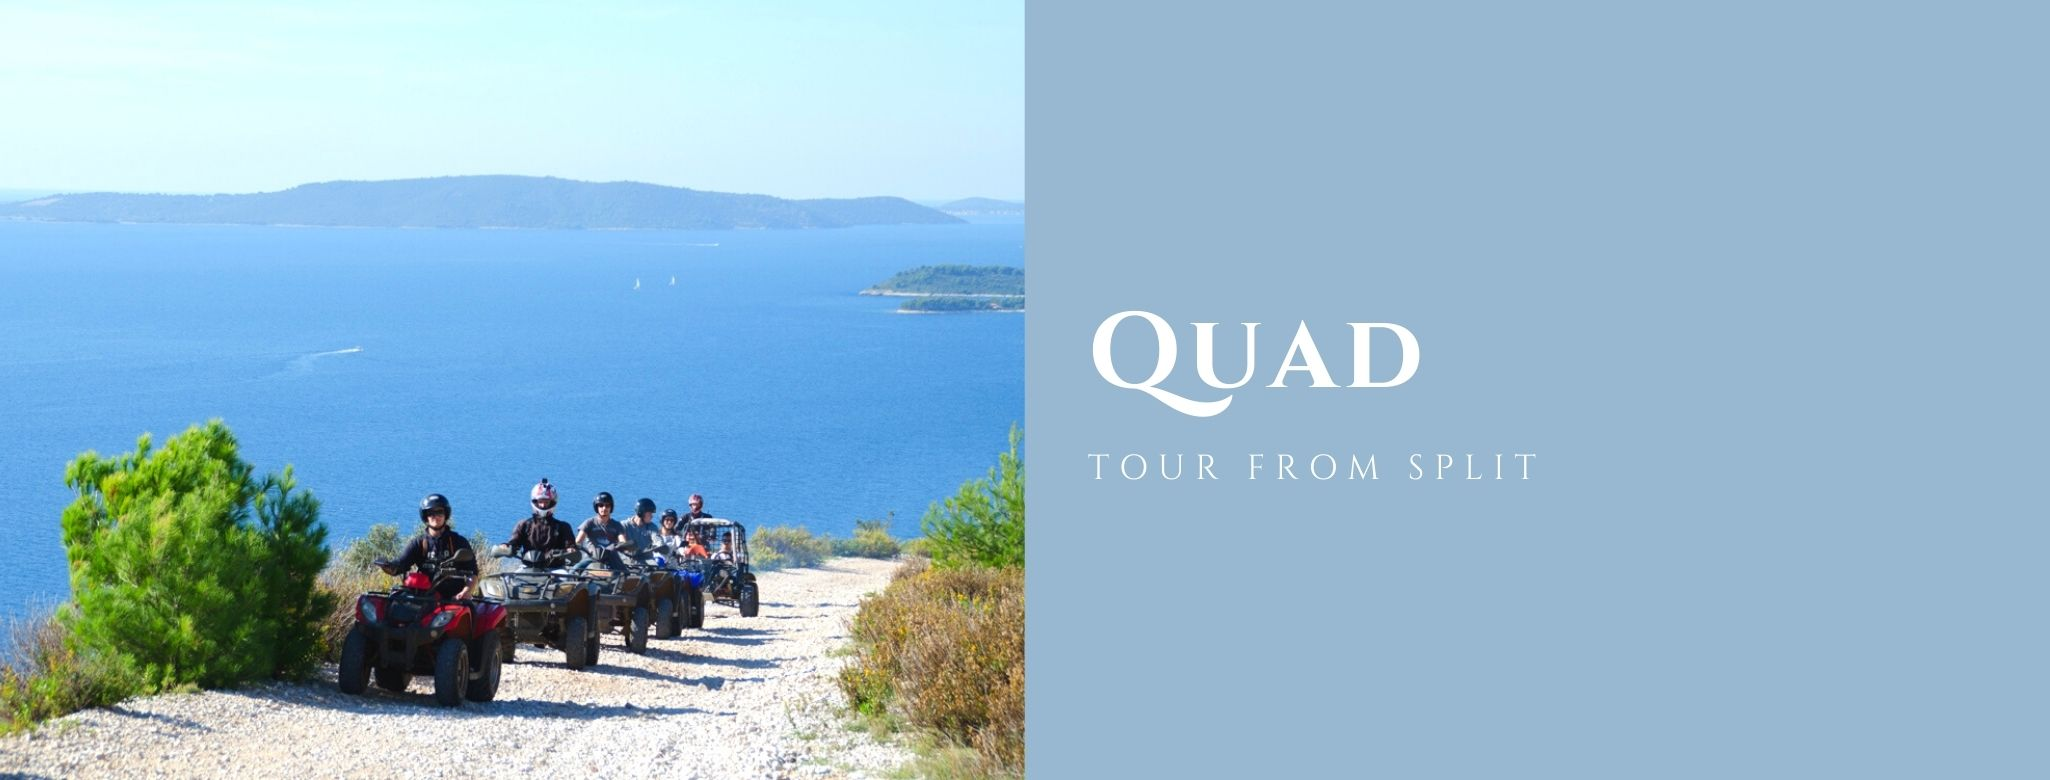 Quad tour from Split excursion MAIN